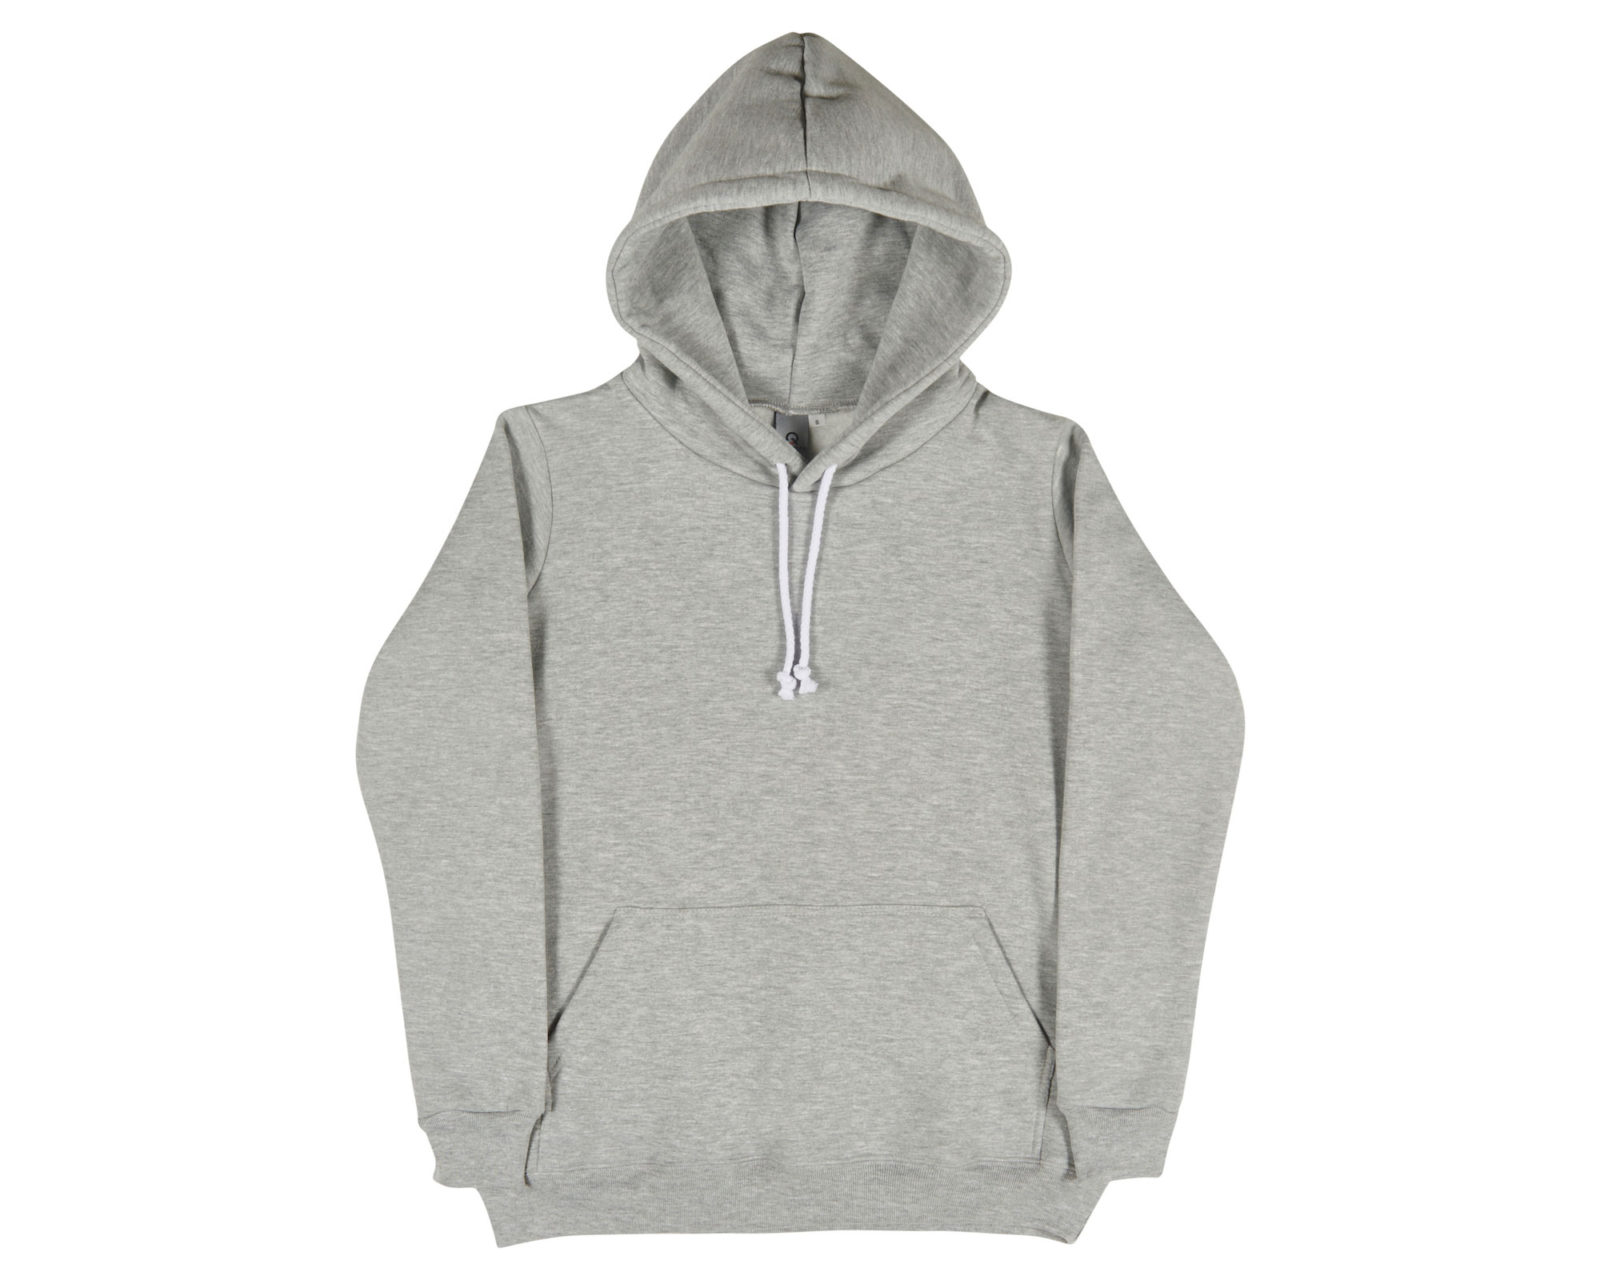 Qualitops Womens Hoodie Polycotton Australian made clothing